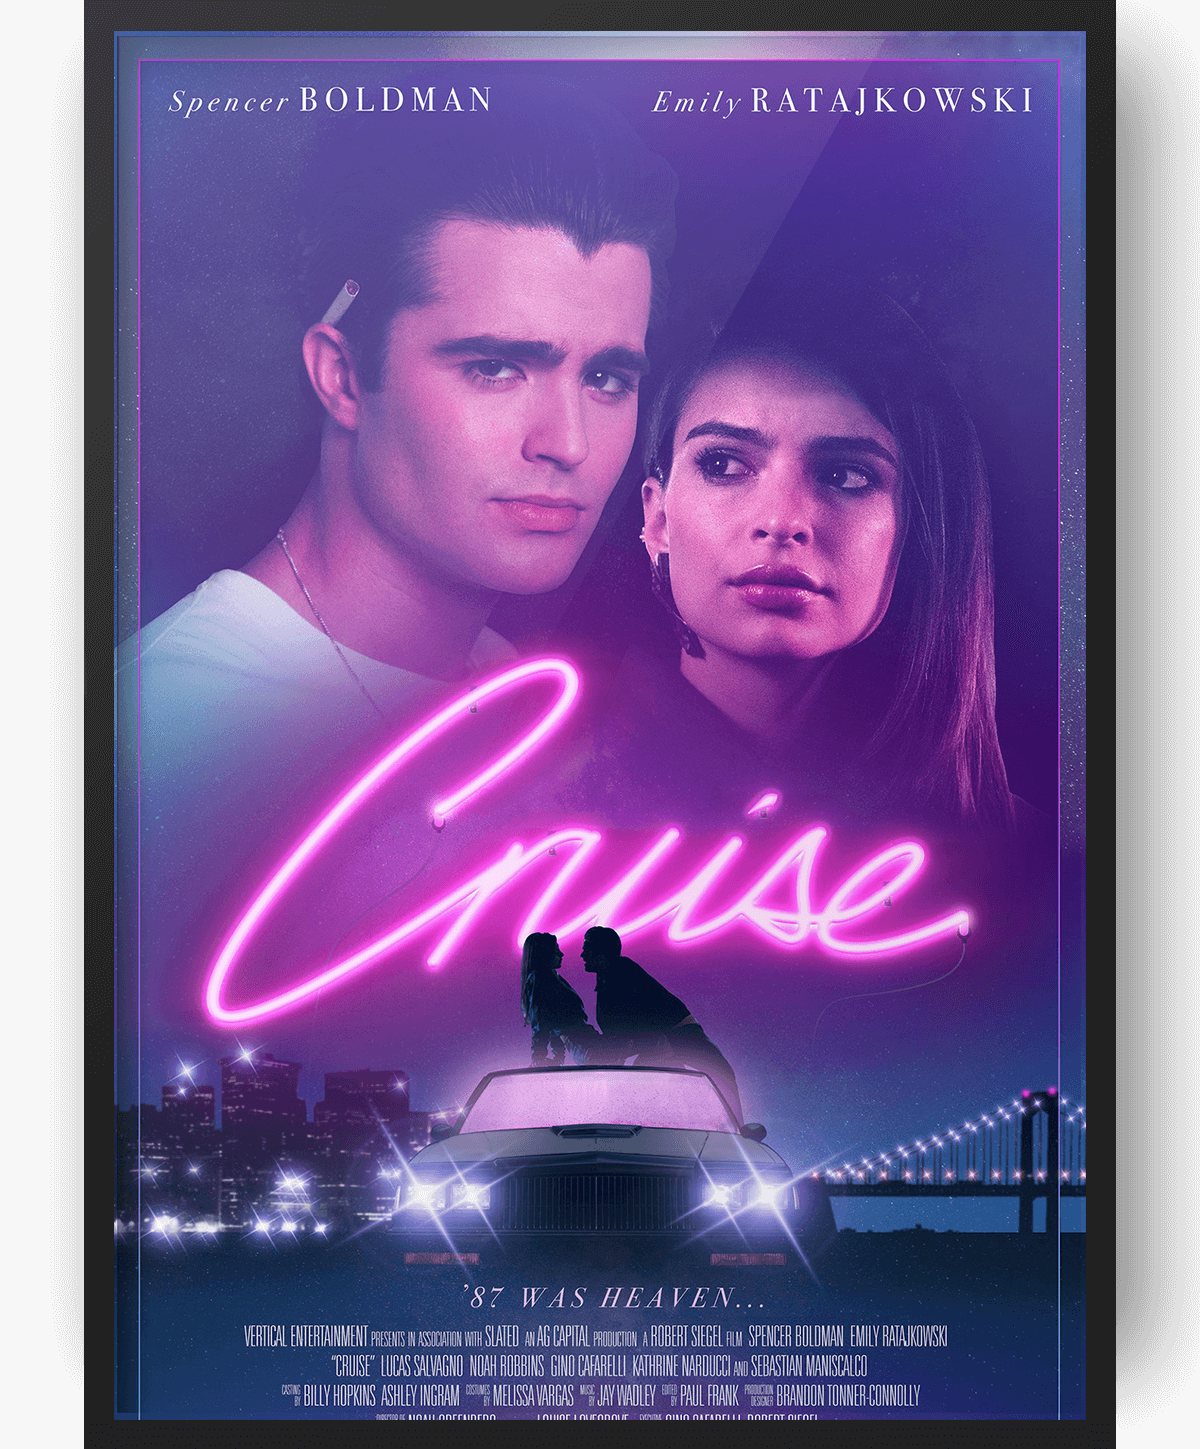 Image_Poster_Cruise.png